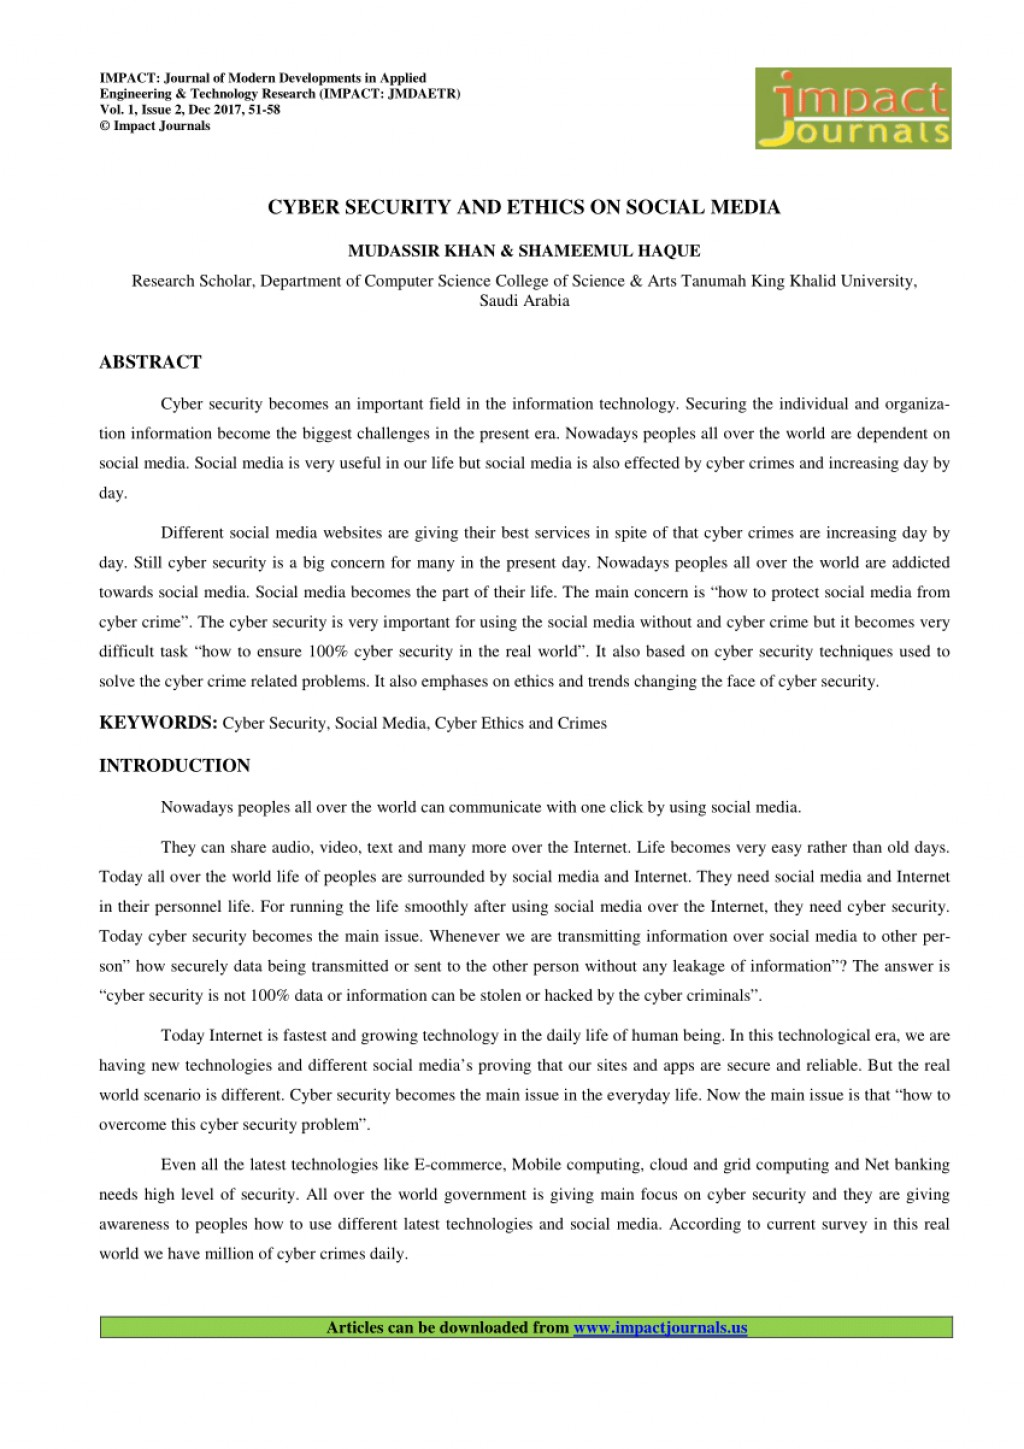 011 Research Papers On Cyber Security Paper Wonderful In E Commerce Topics Pdf Large